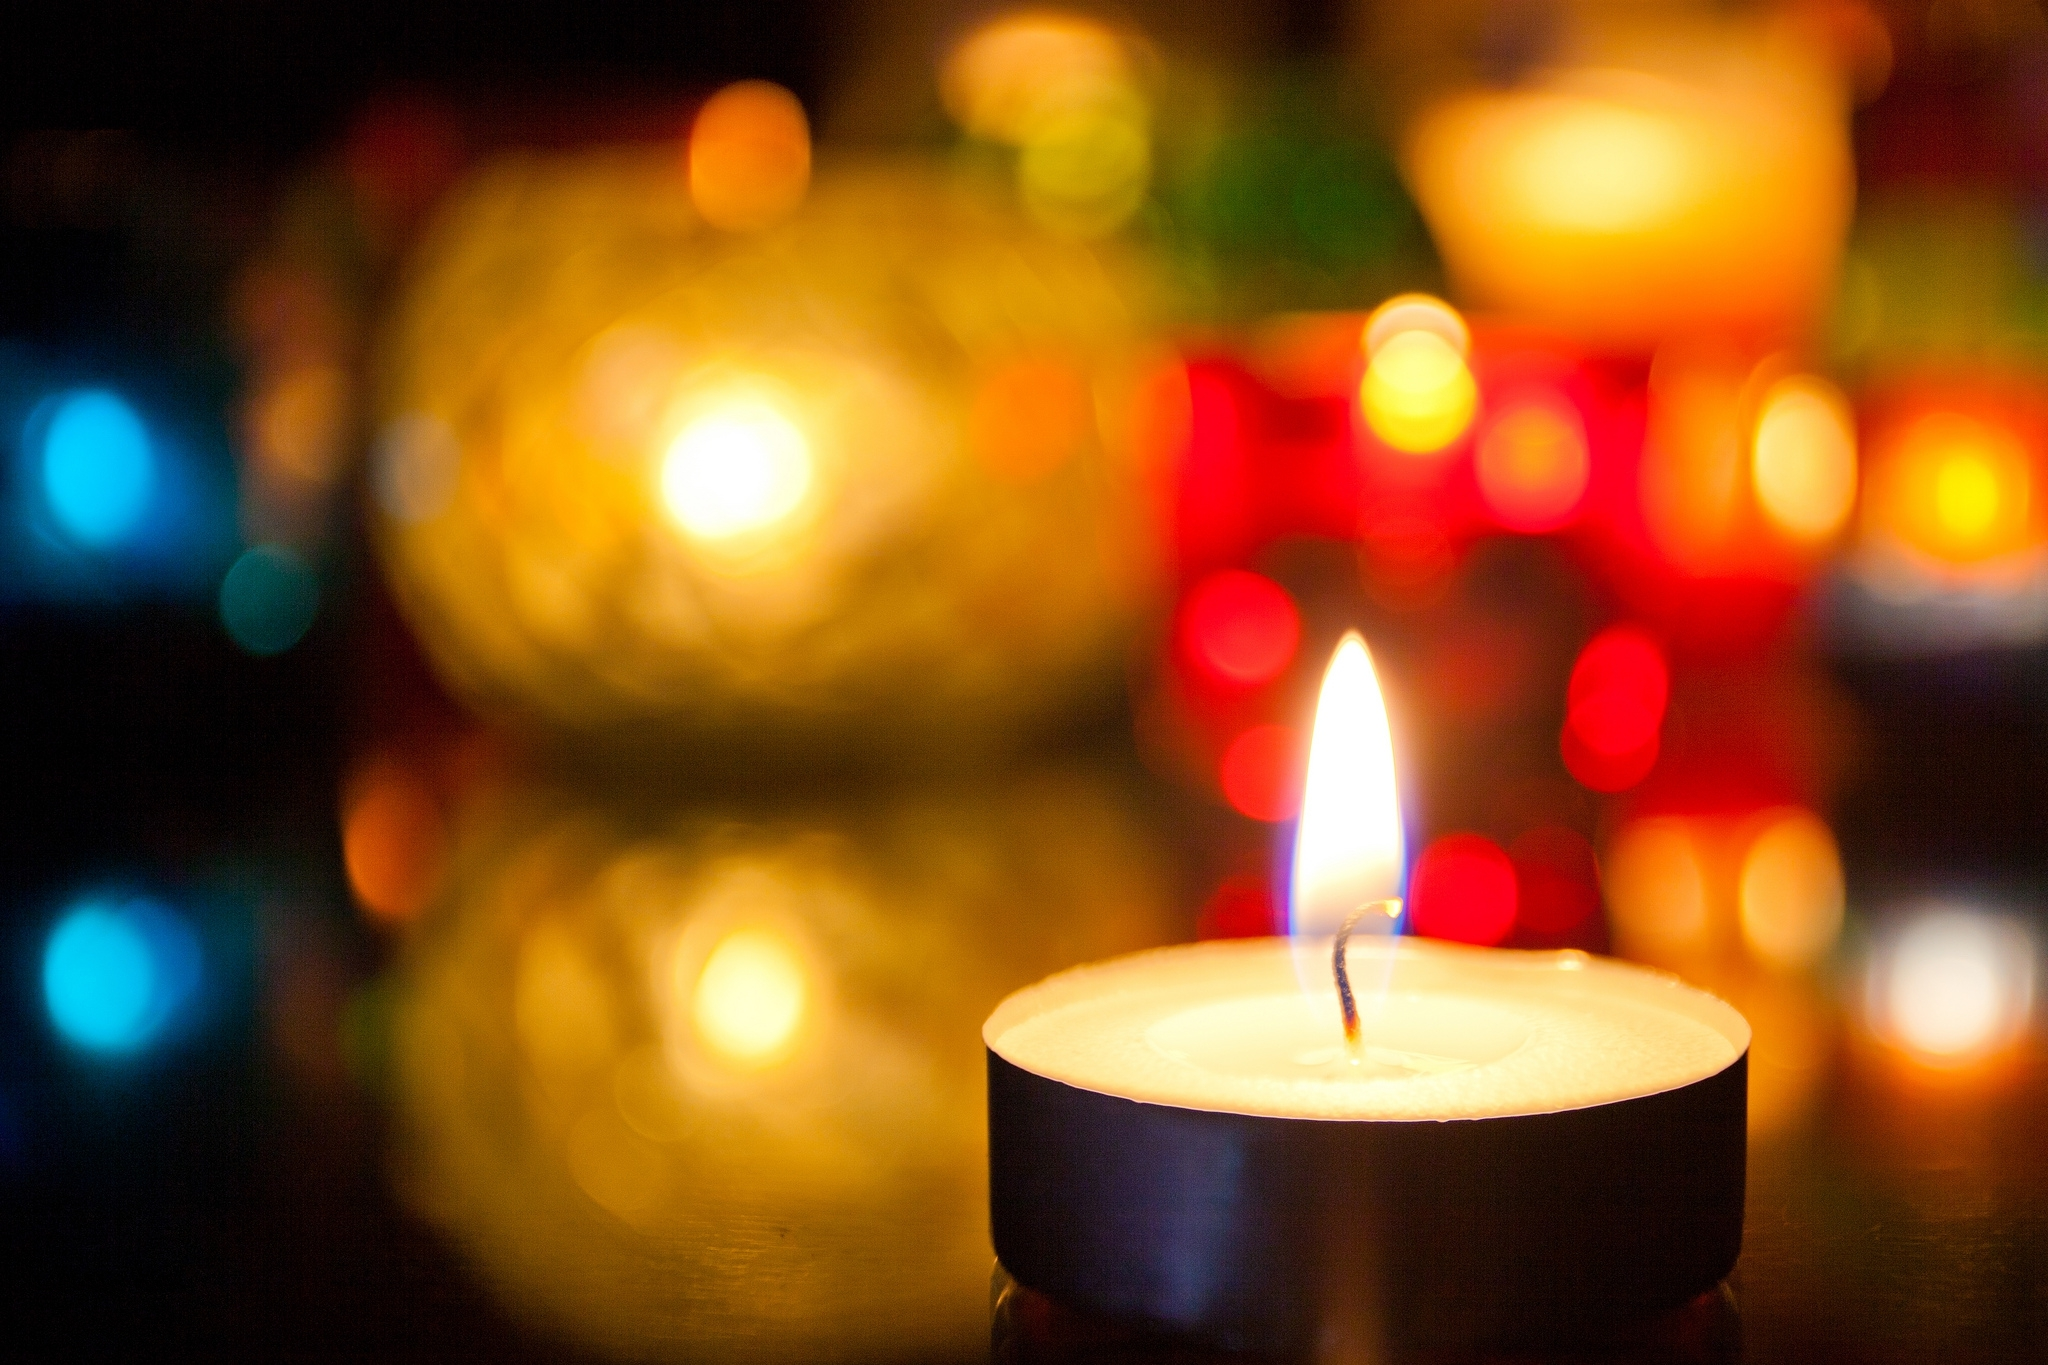 Beauty Candle Wallpapers HD wallpapers   Beauty Candle Wallpapers 2048x1365